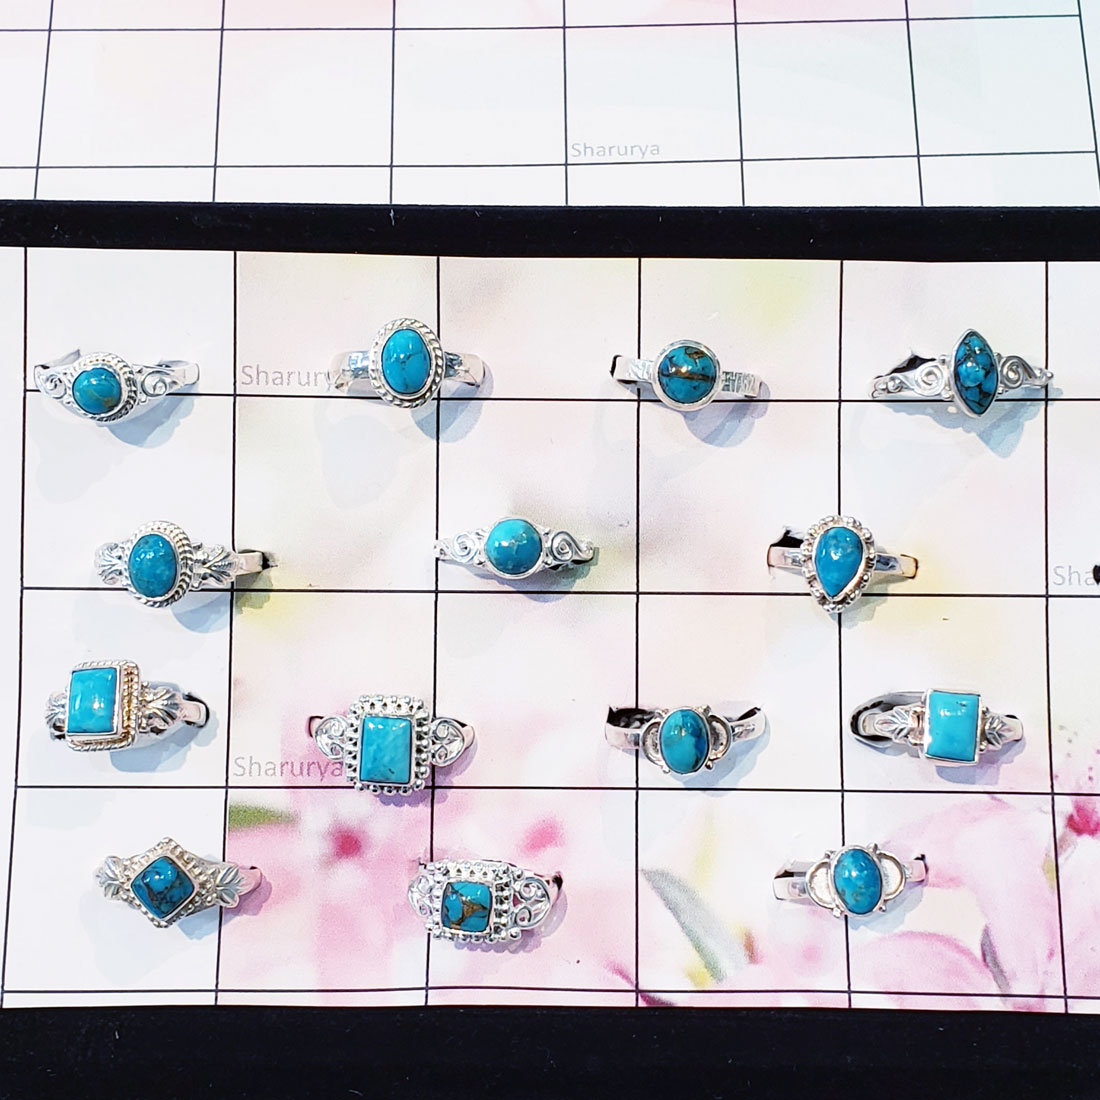 100 Gram Blue Turquoise Ring - RJW-003-32 to 36 Pcs Blue Turquoise Handmade Small Designer Wholesale Rings Lot